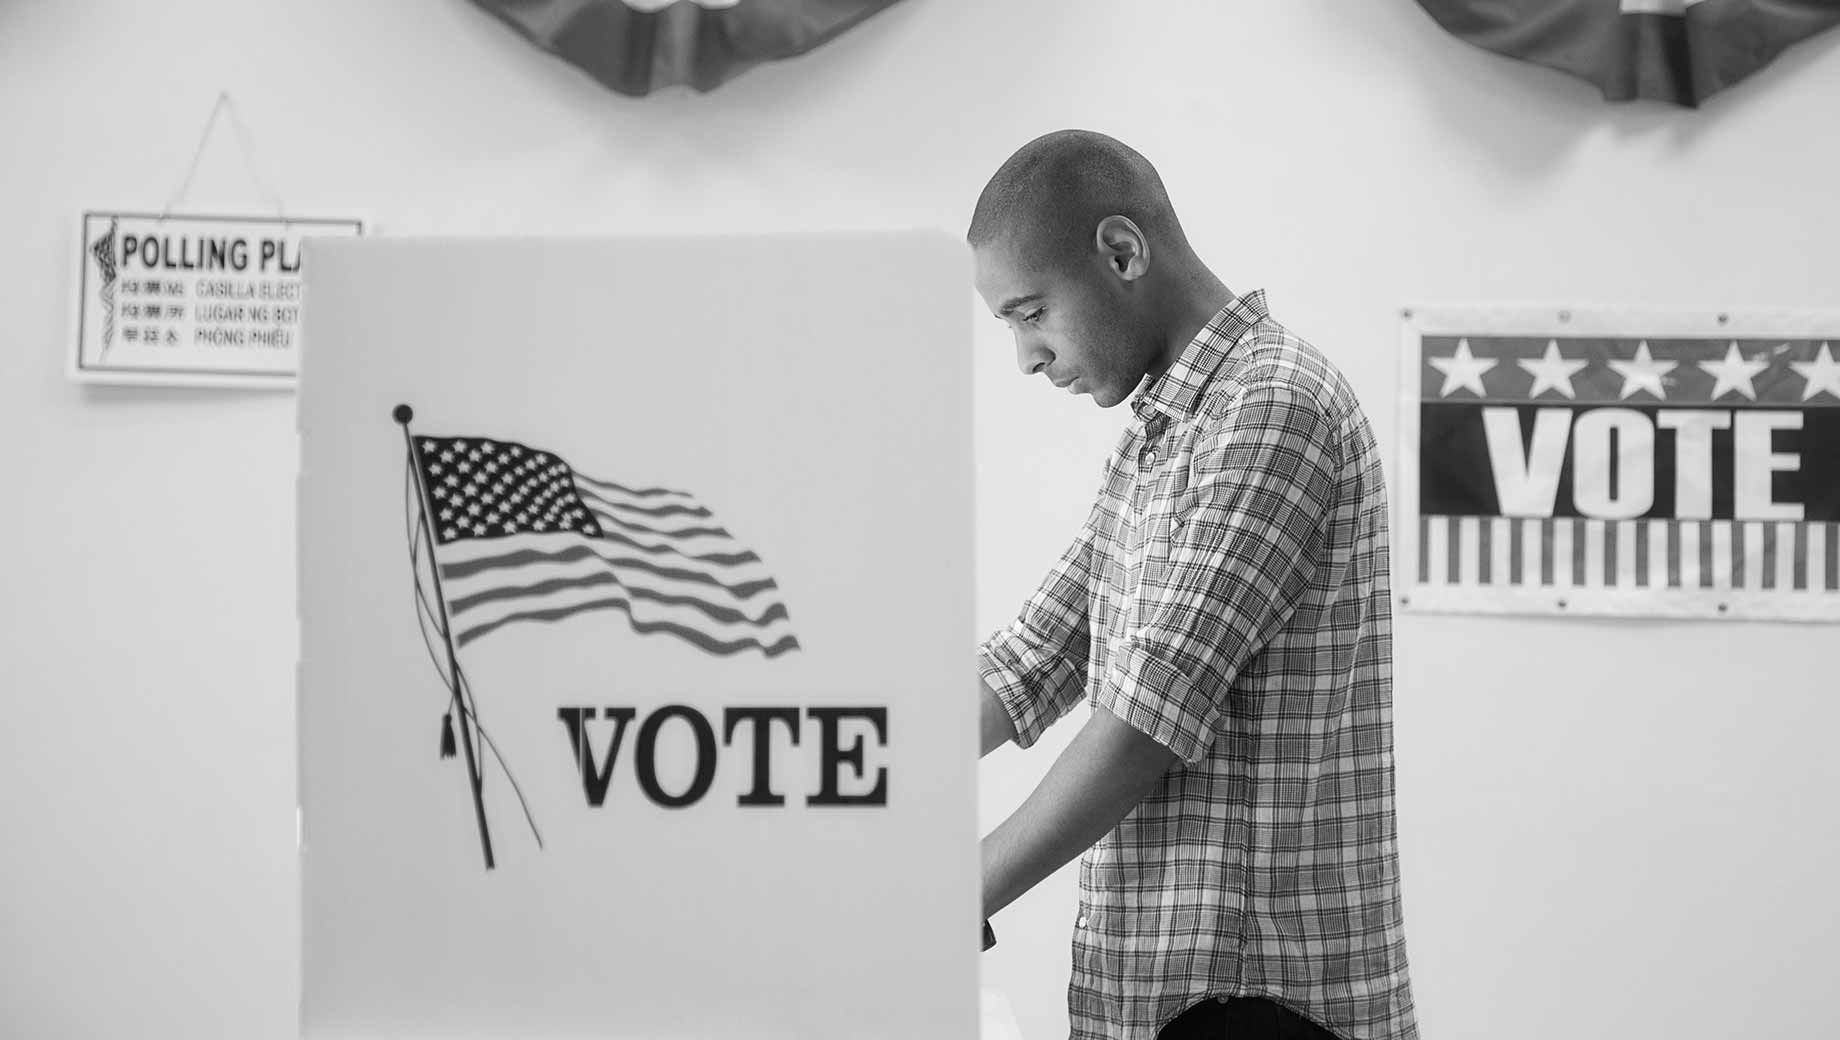 Faith in Elections in Relatively Short Supply in U.S.